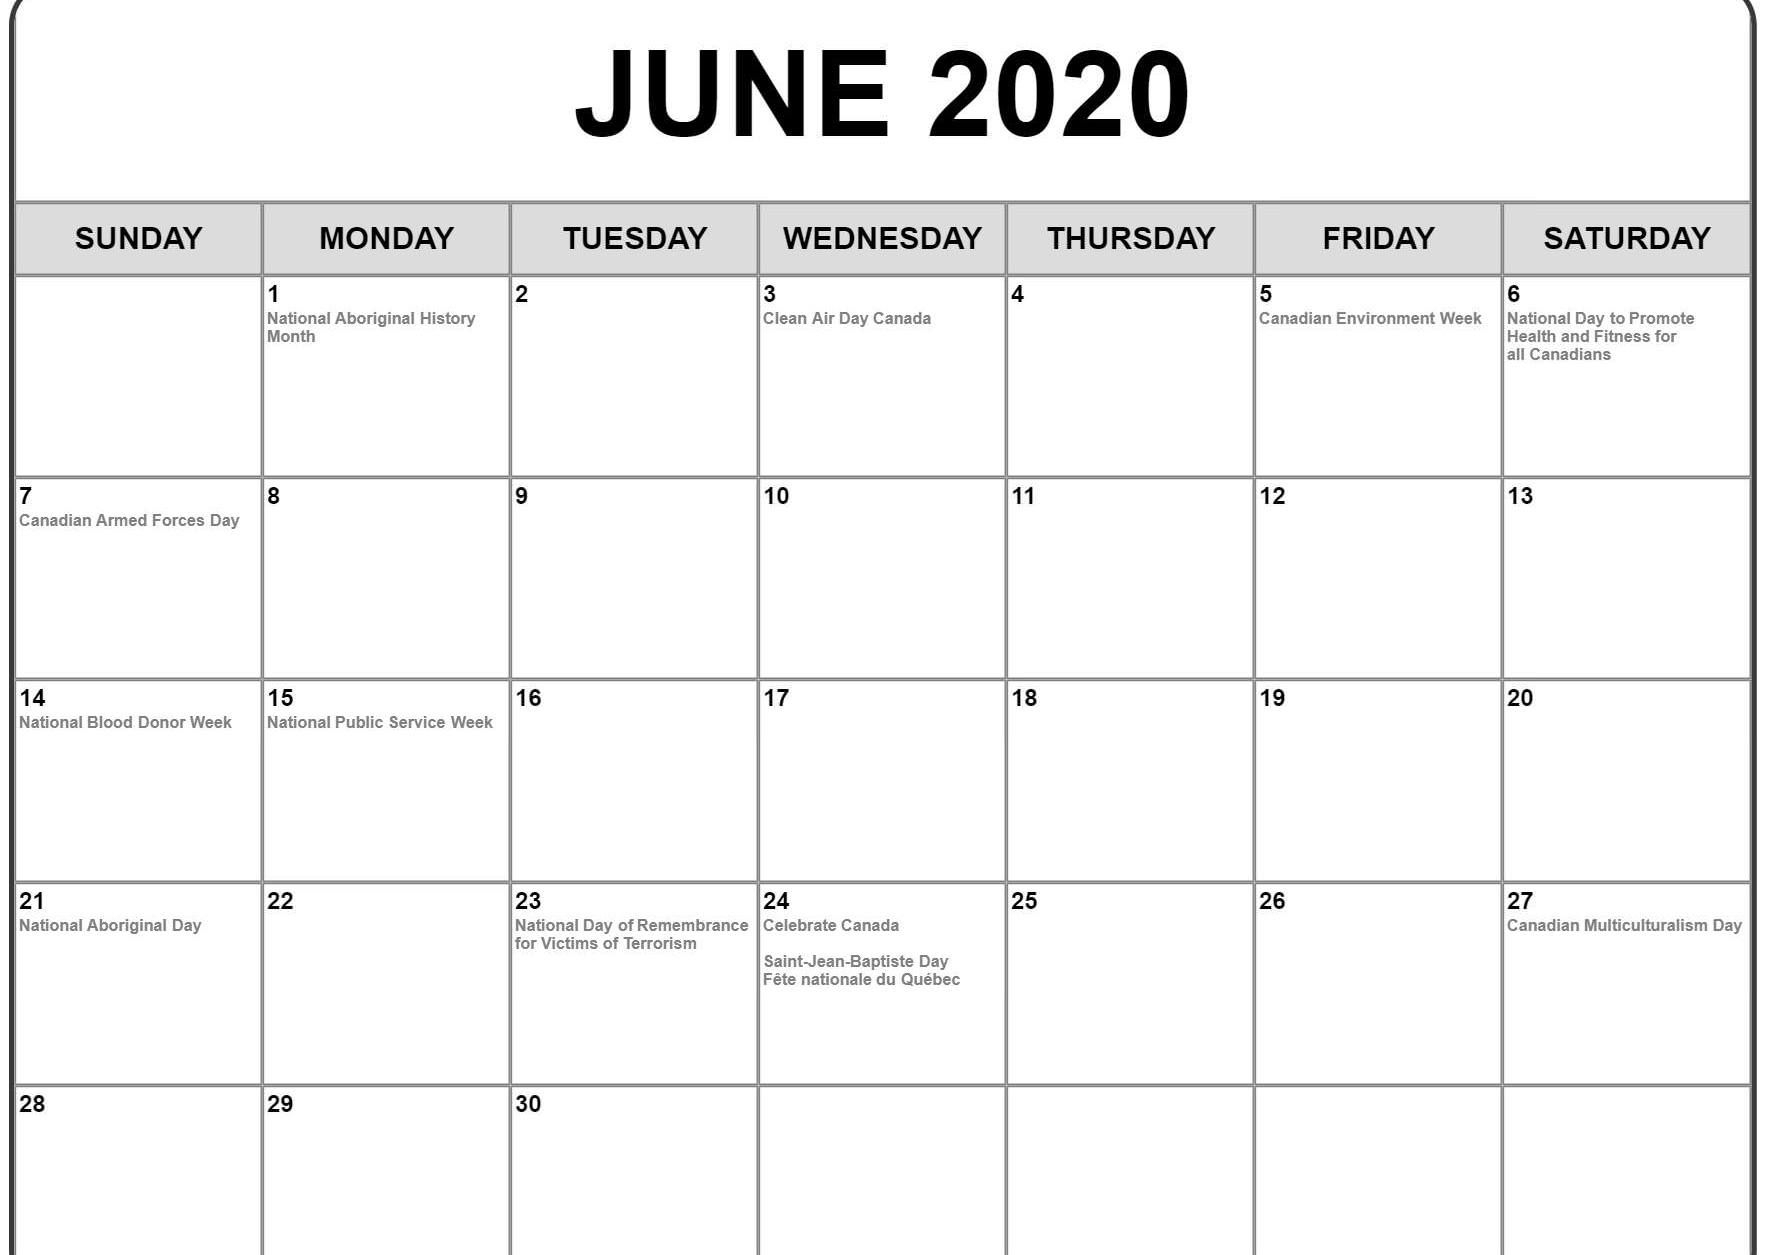 June 2020 Calendar With Holidays | Monthly Calendar Template intended for Printable Calendar 2020 Monthly With Holidays